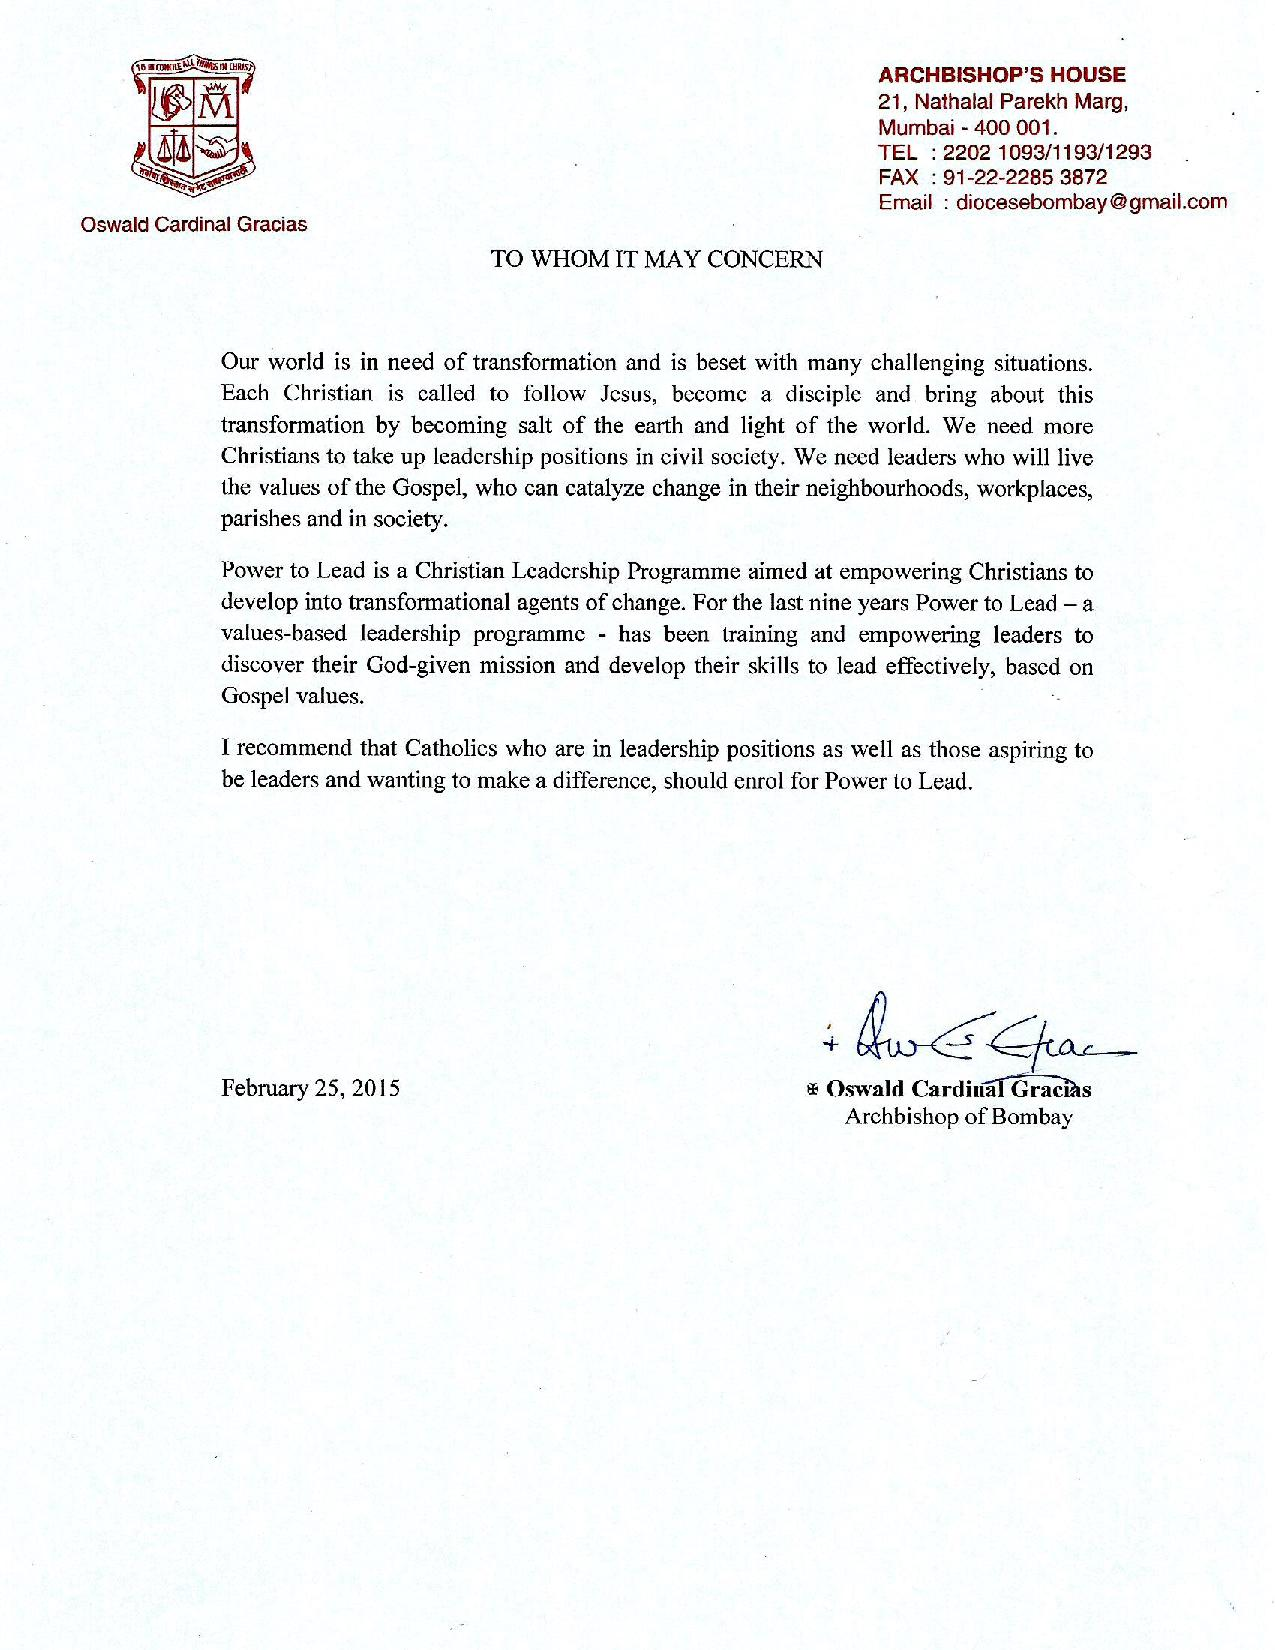 Letter from Archbishop